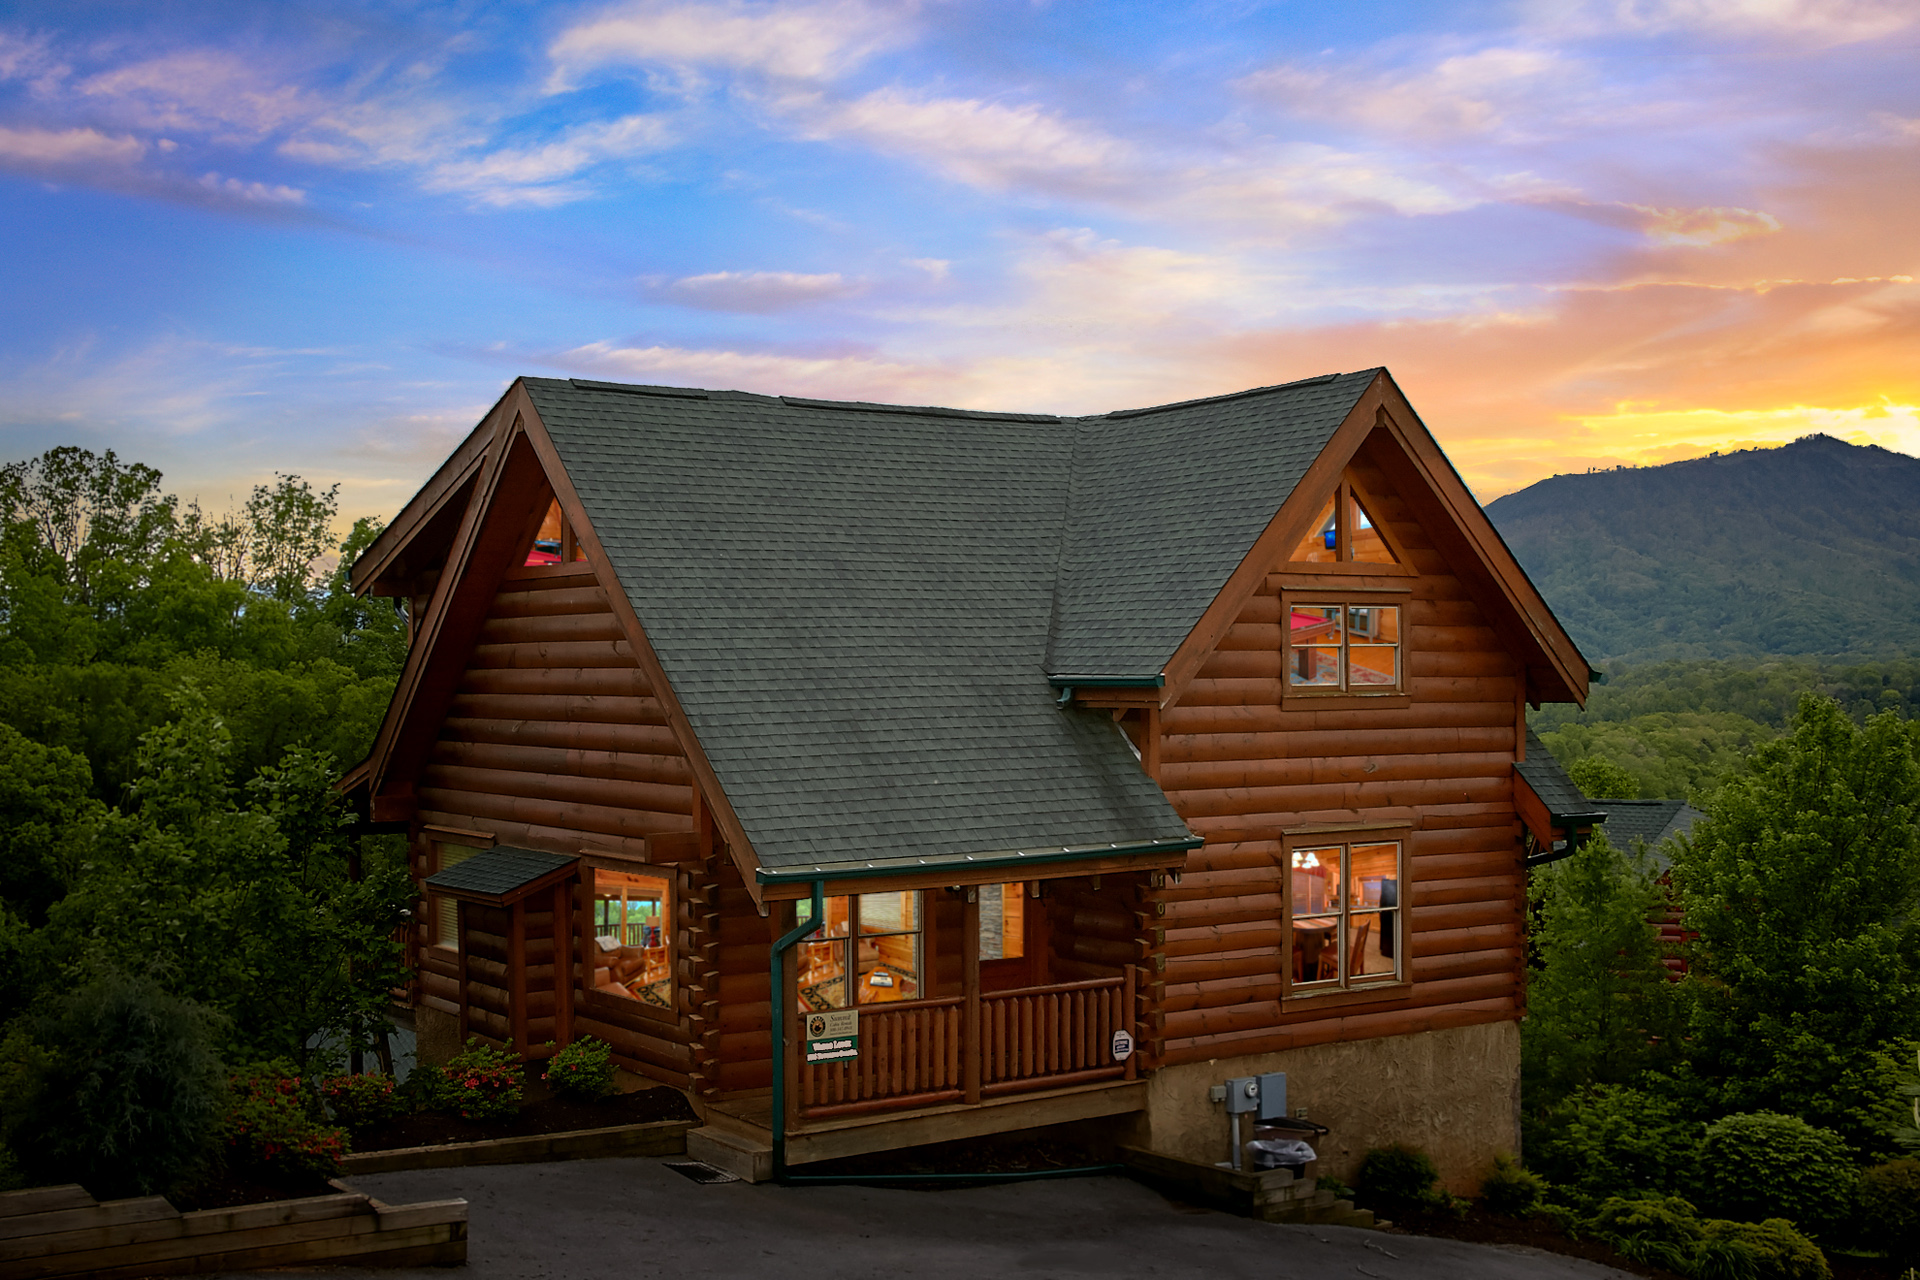 wahoo smoky sc great homes tennesse living for cabin cabins and mountain in ldg sale